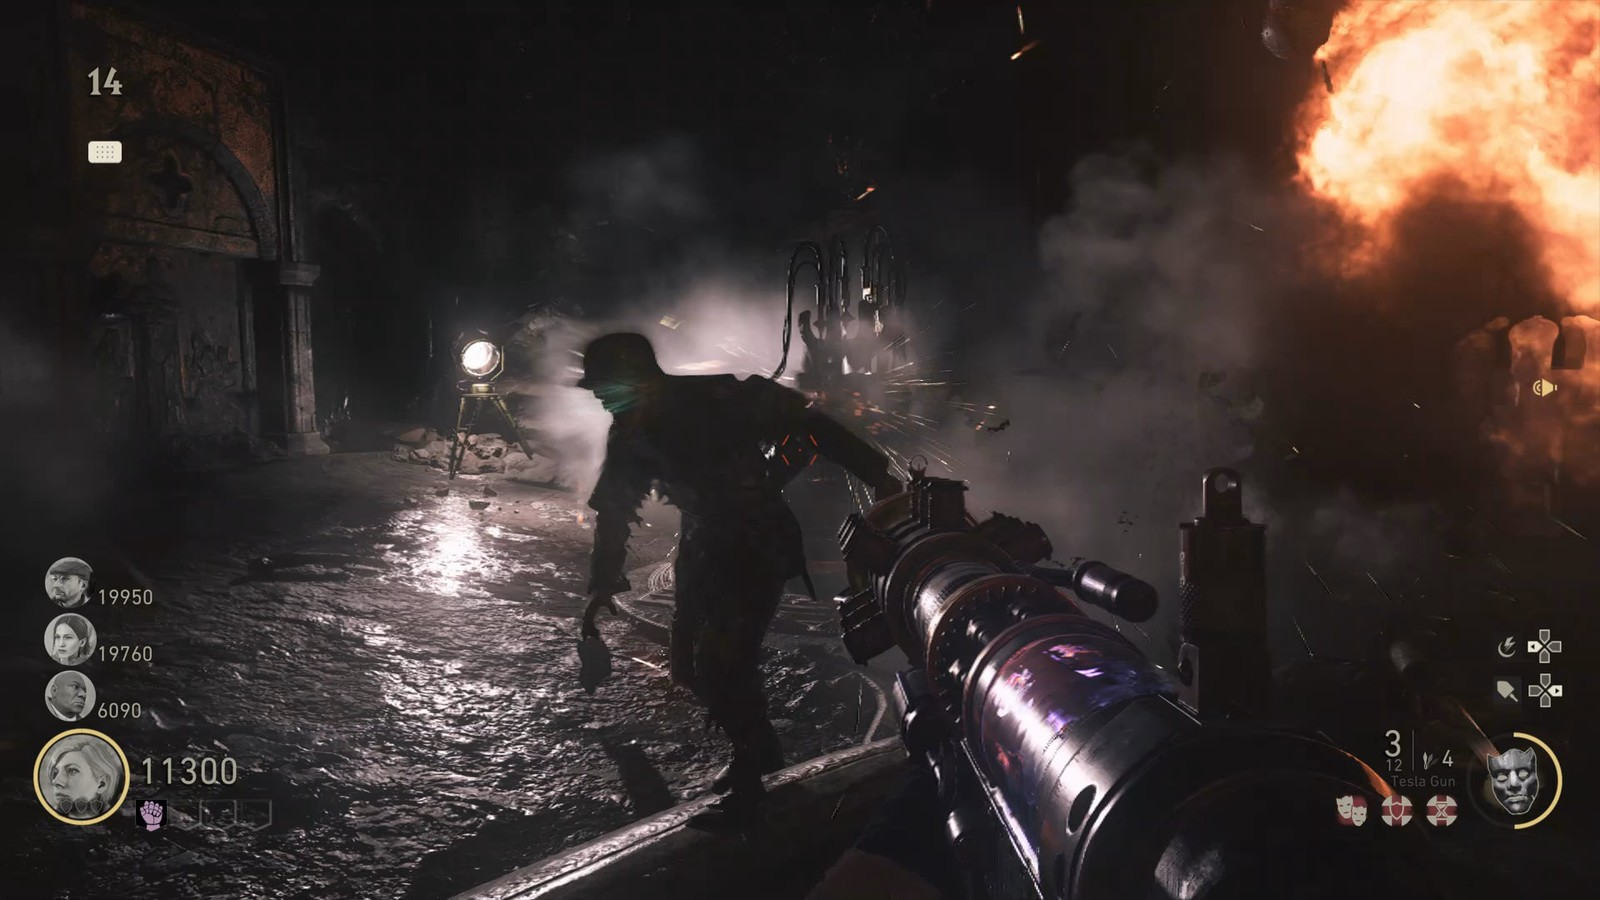 Call Of Duty Ww2 Zombies Wallpaper Posted By Samantha Anderson